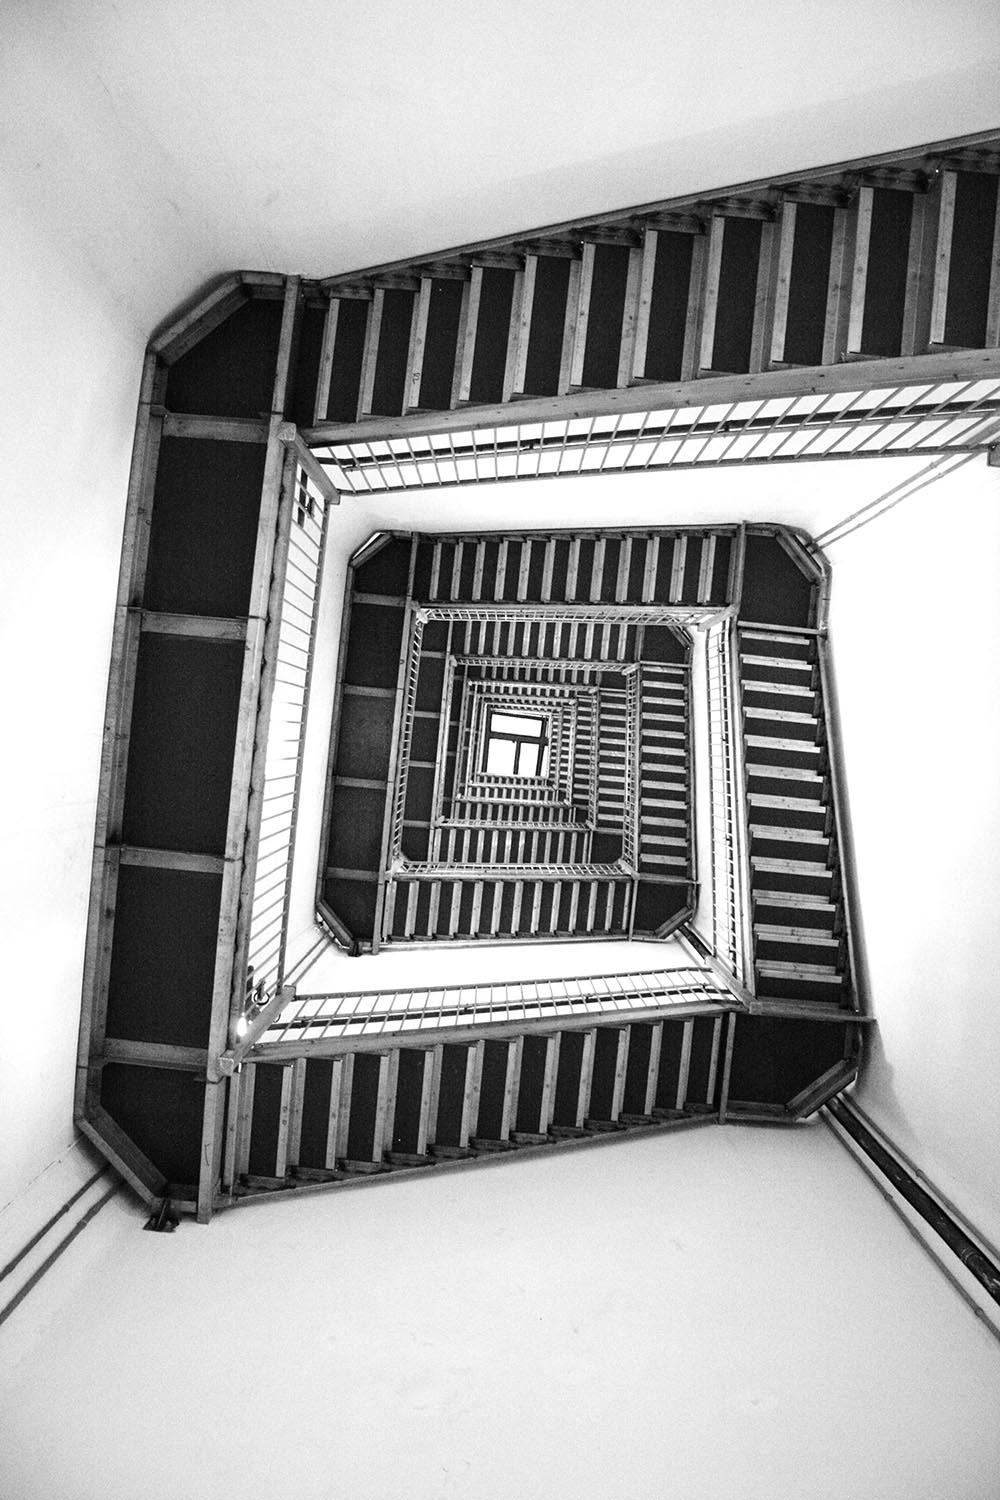 Black and white photo of a spiraling staircase in a walk-up building.